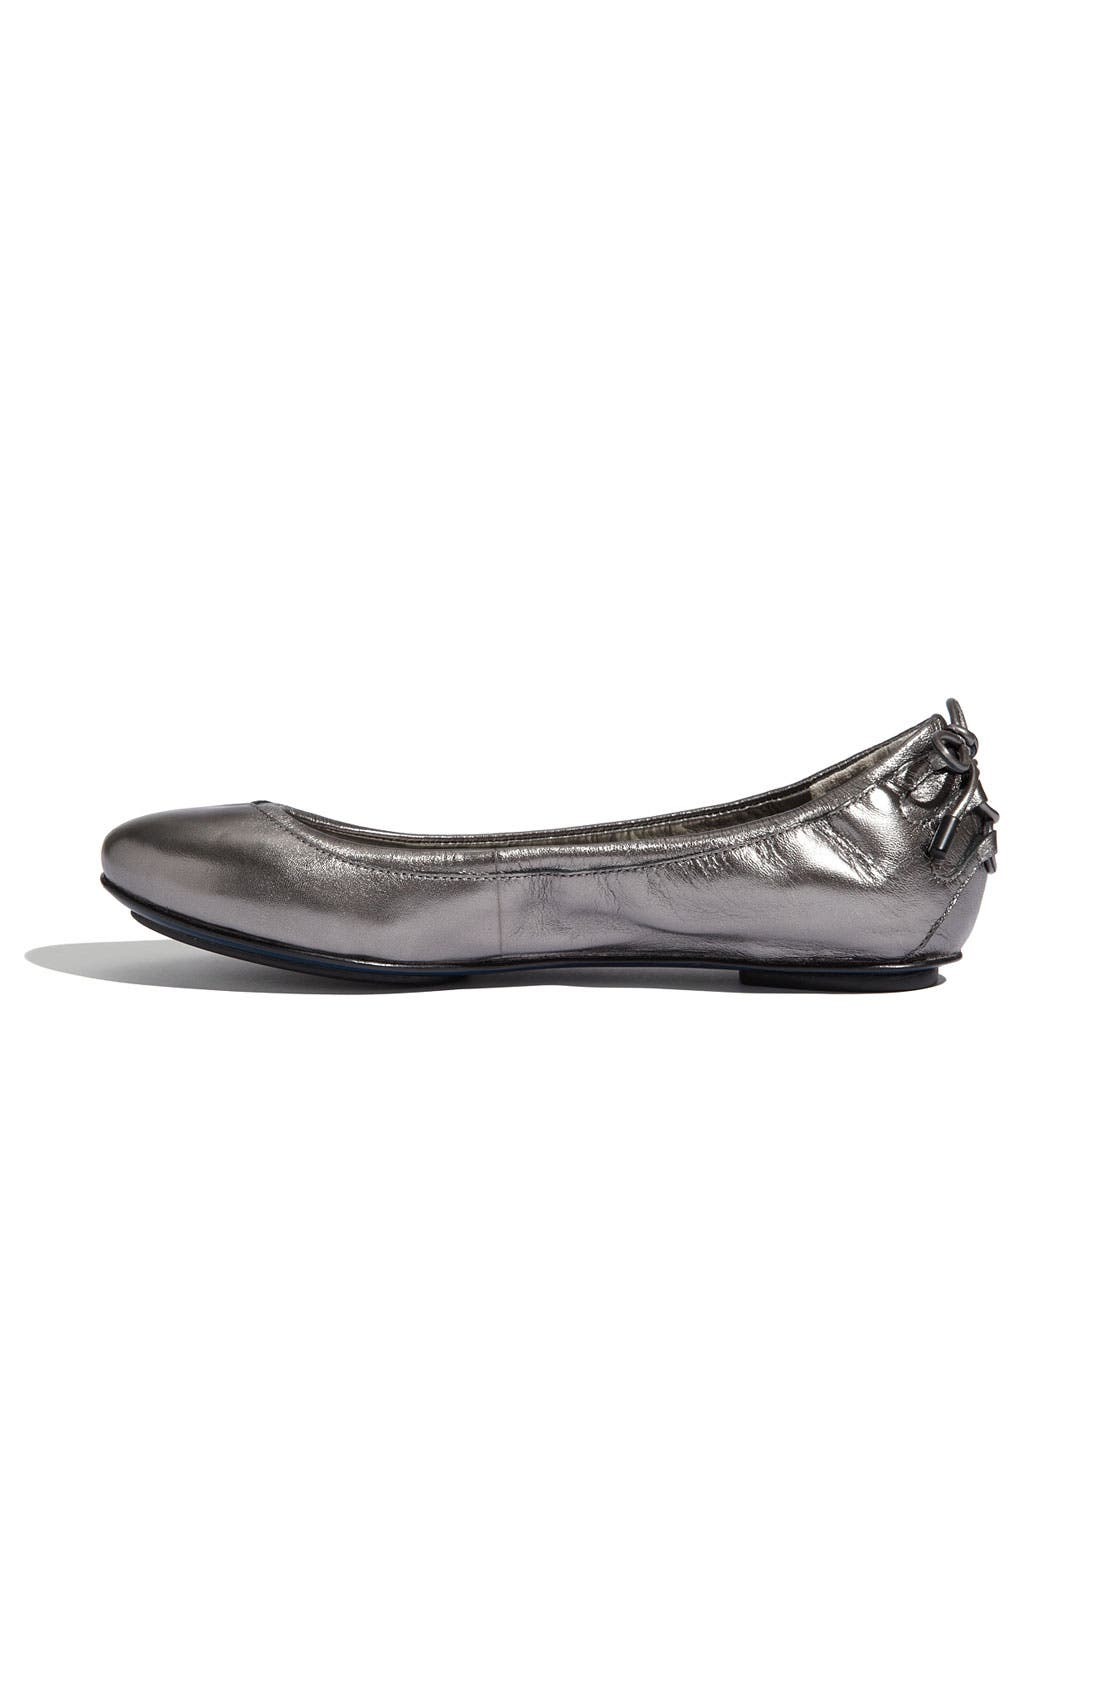 ,                             Maria Sharapova by Cole Haan 'Air Bacara' Flat,                             Alternate thumbnail 16, color,                             041